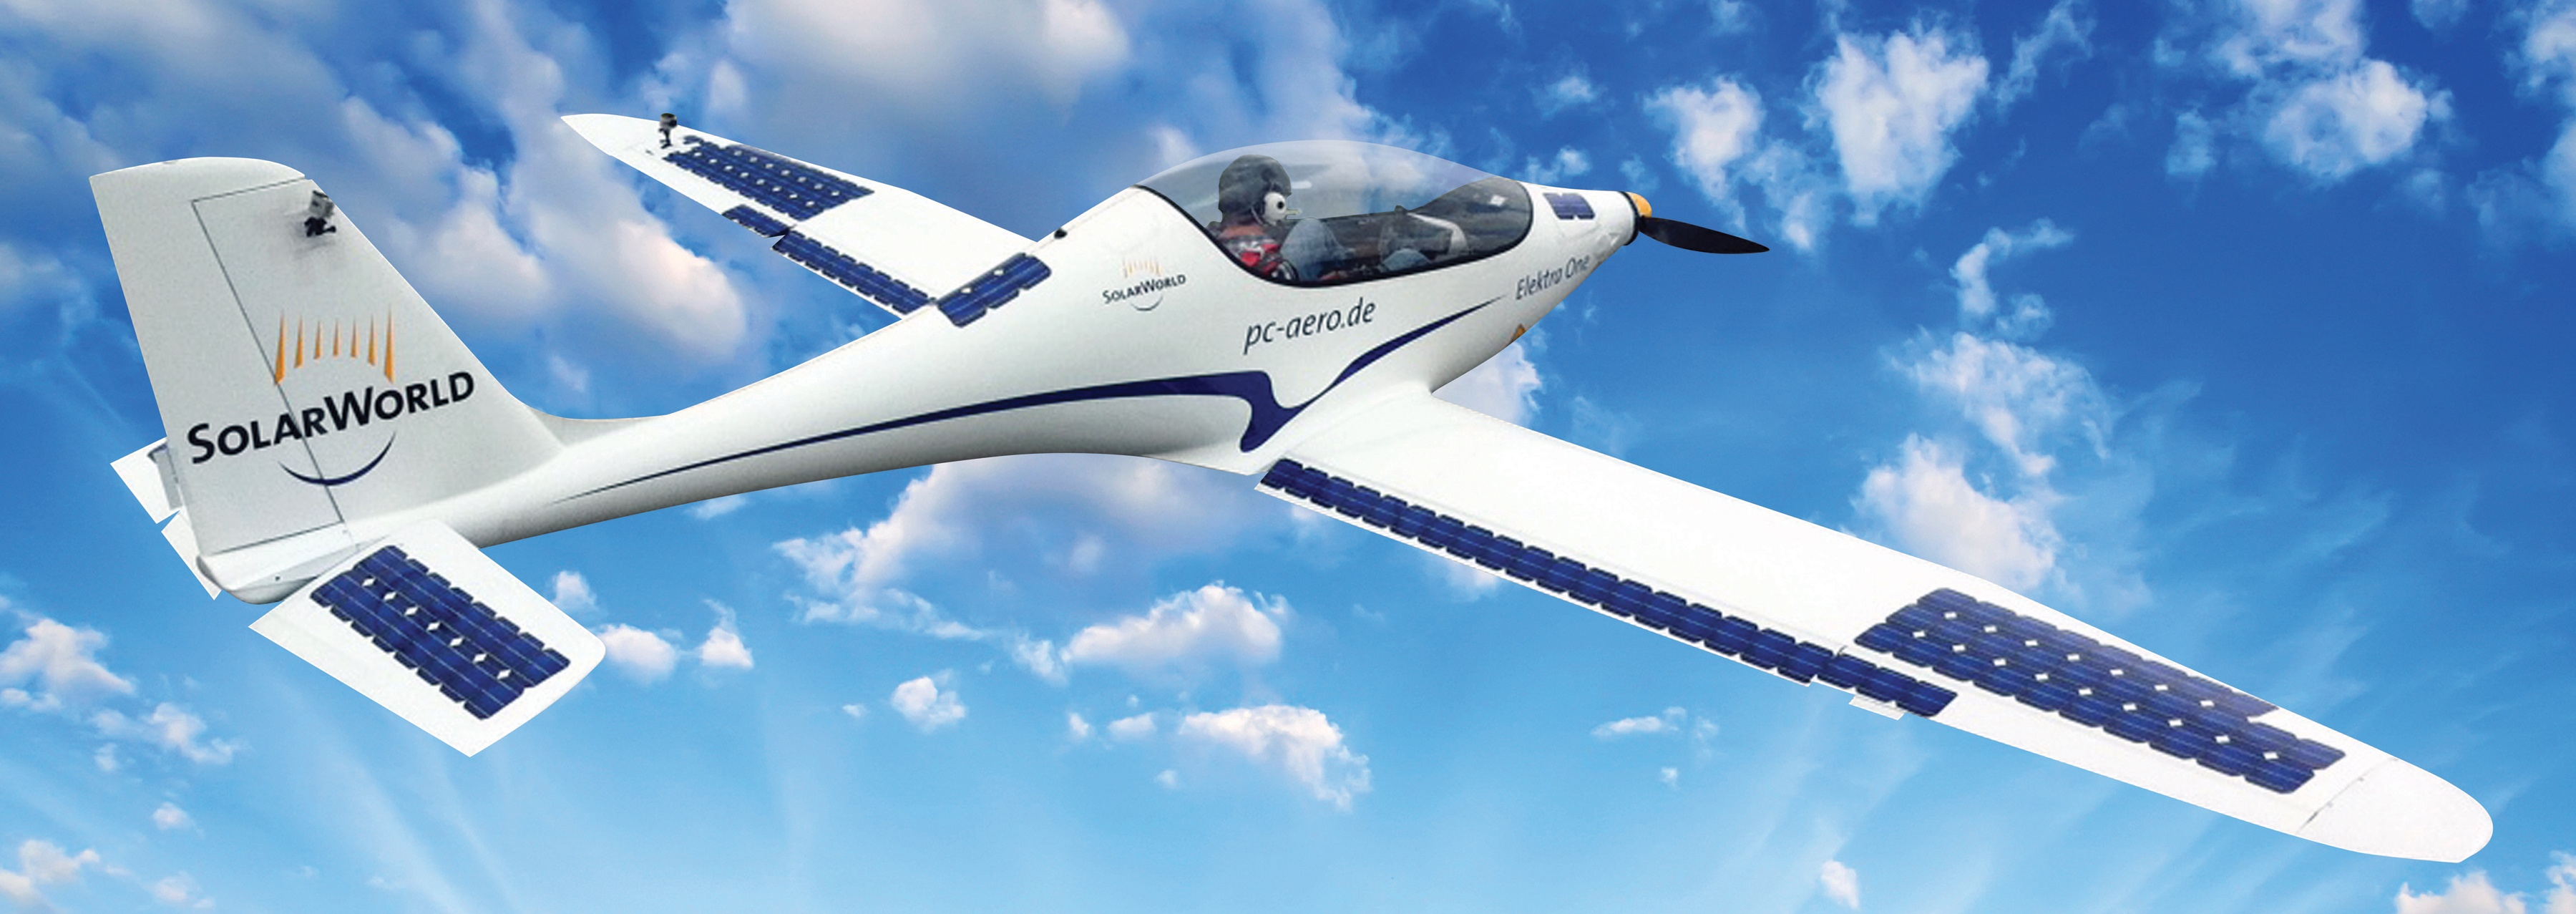 Elektra One Electric Airplane Doubles Range By Installing